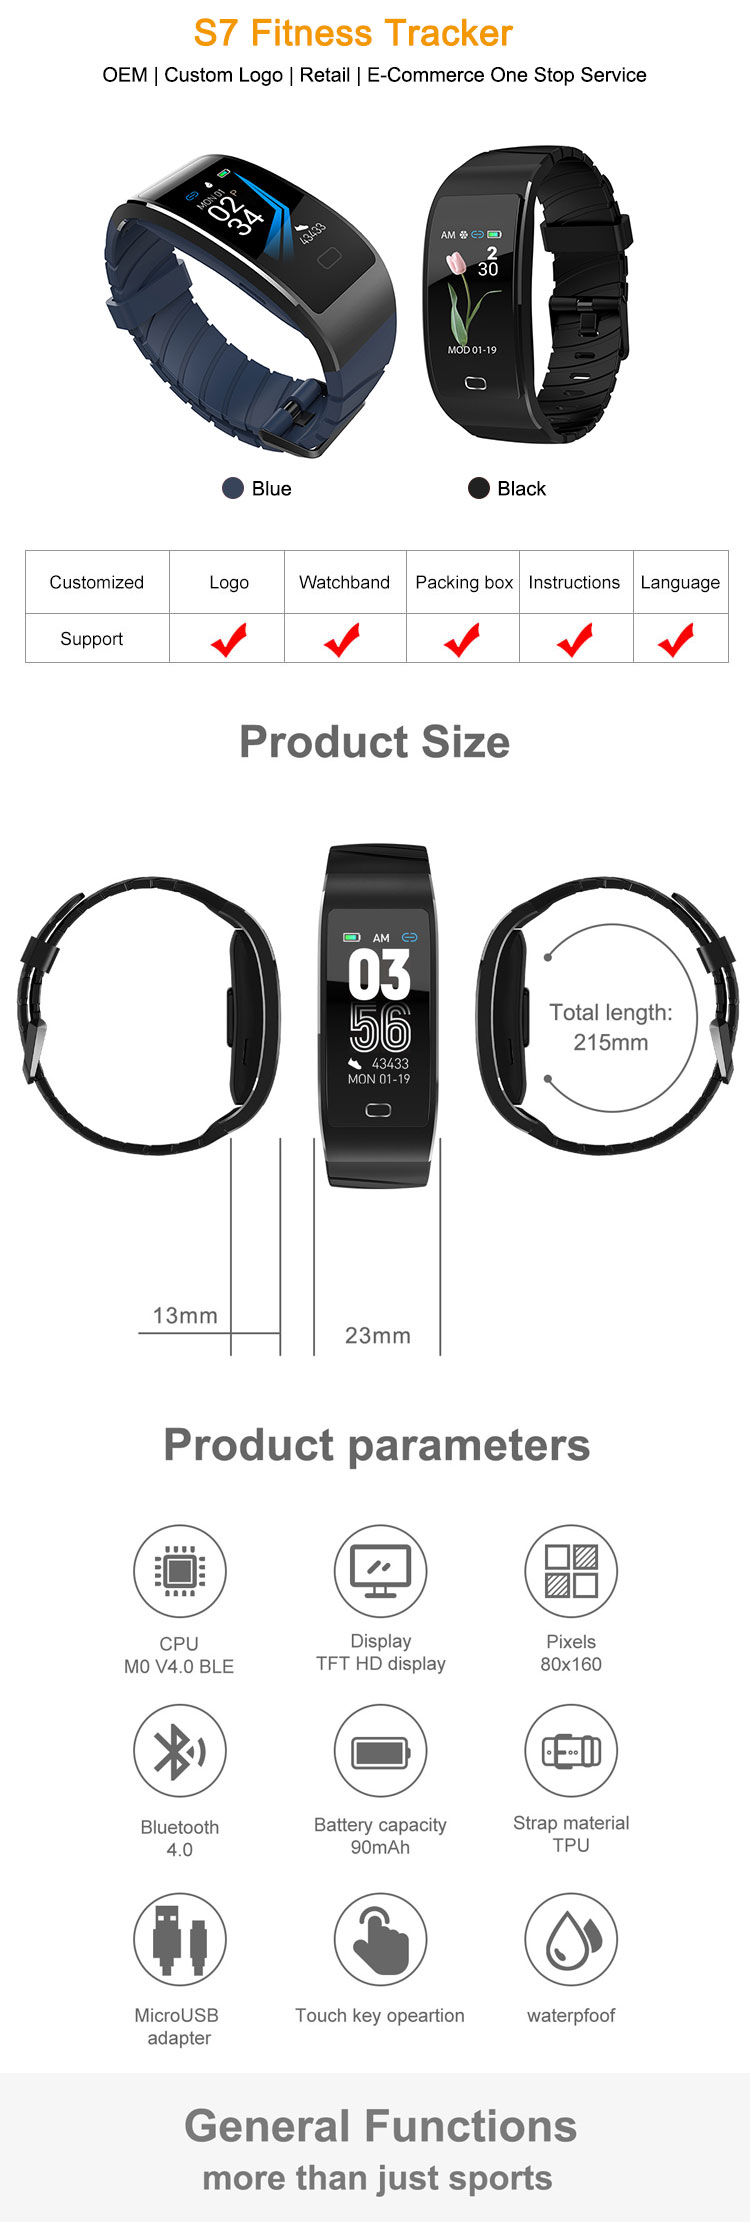 New Sport Fitness Band Tracker Watch Gps Heart Rate